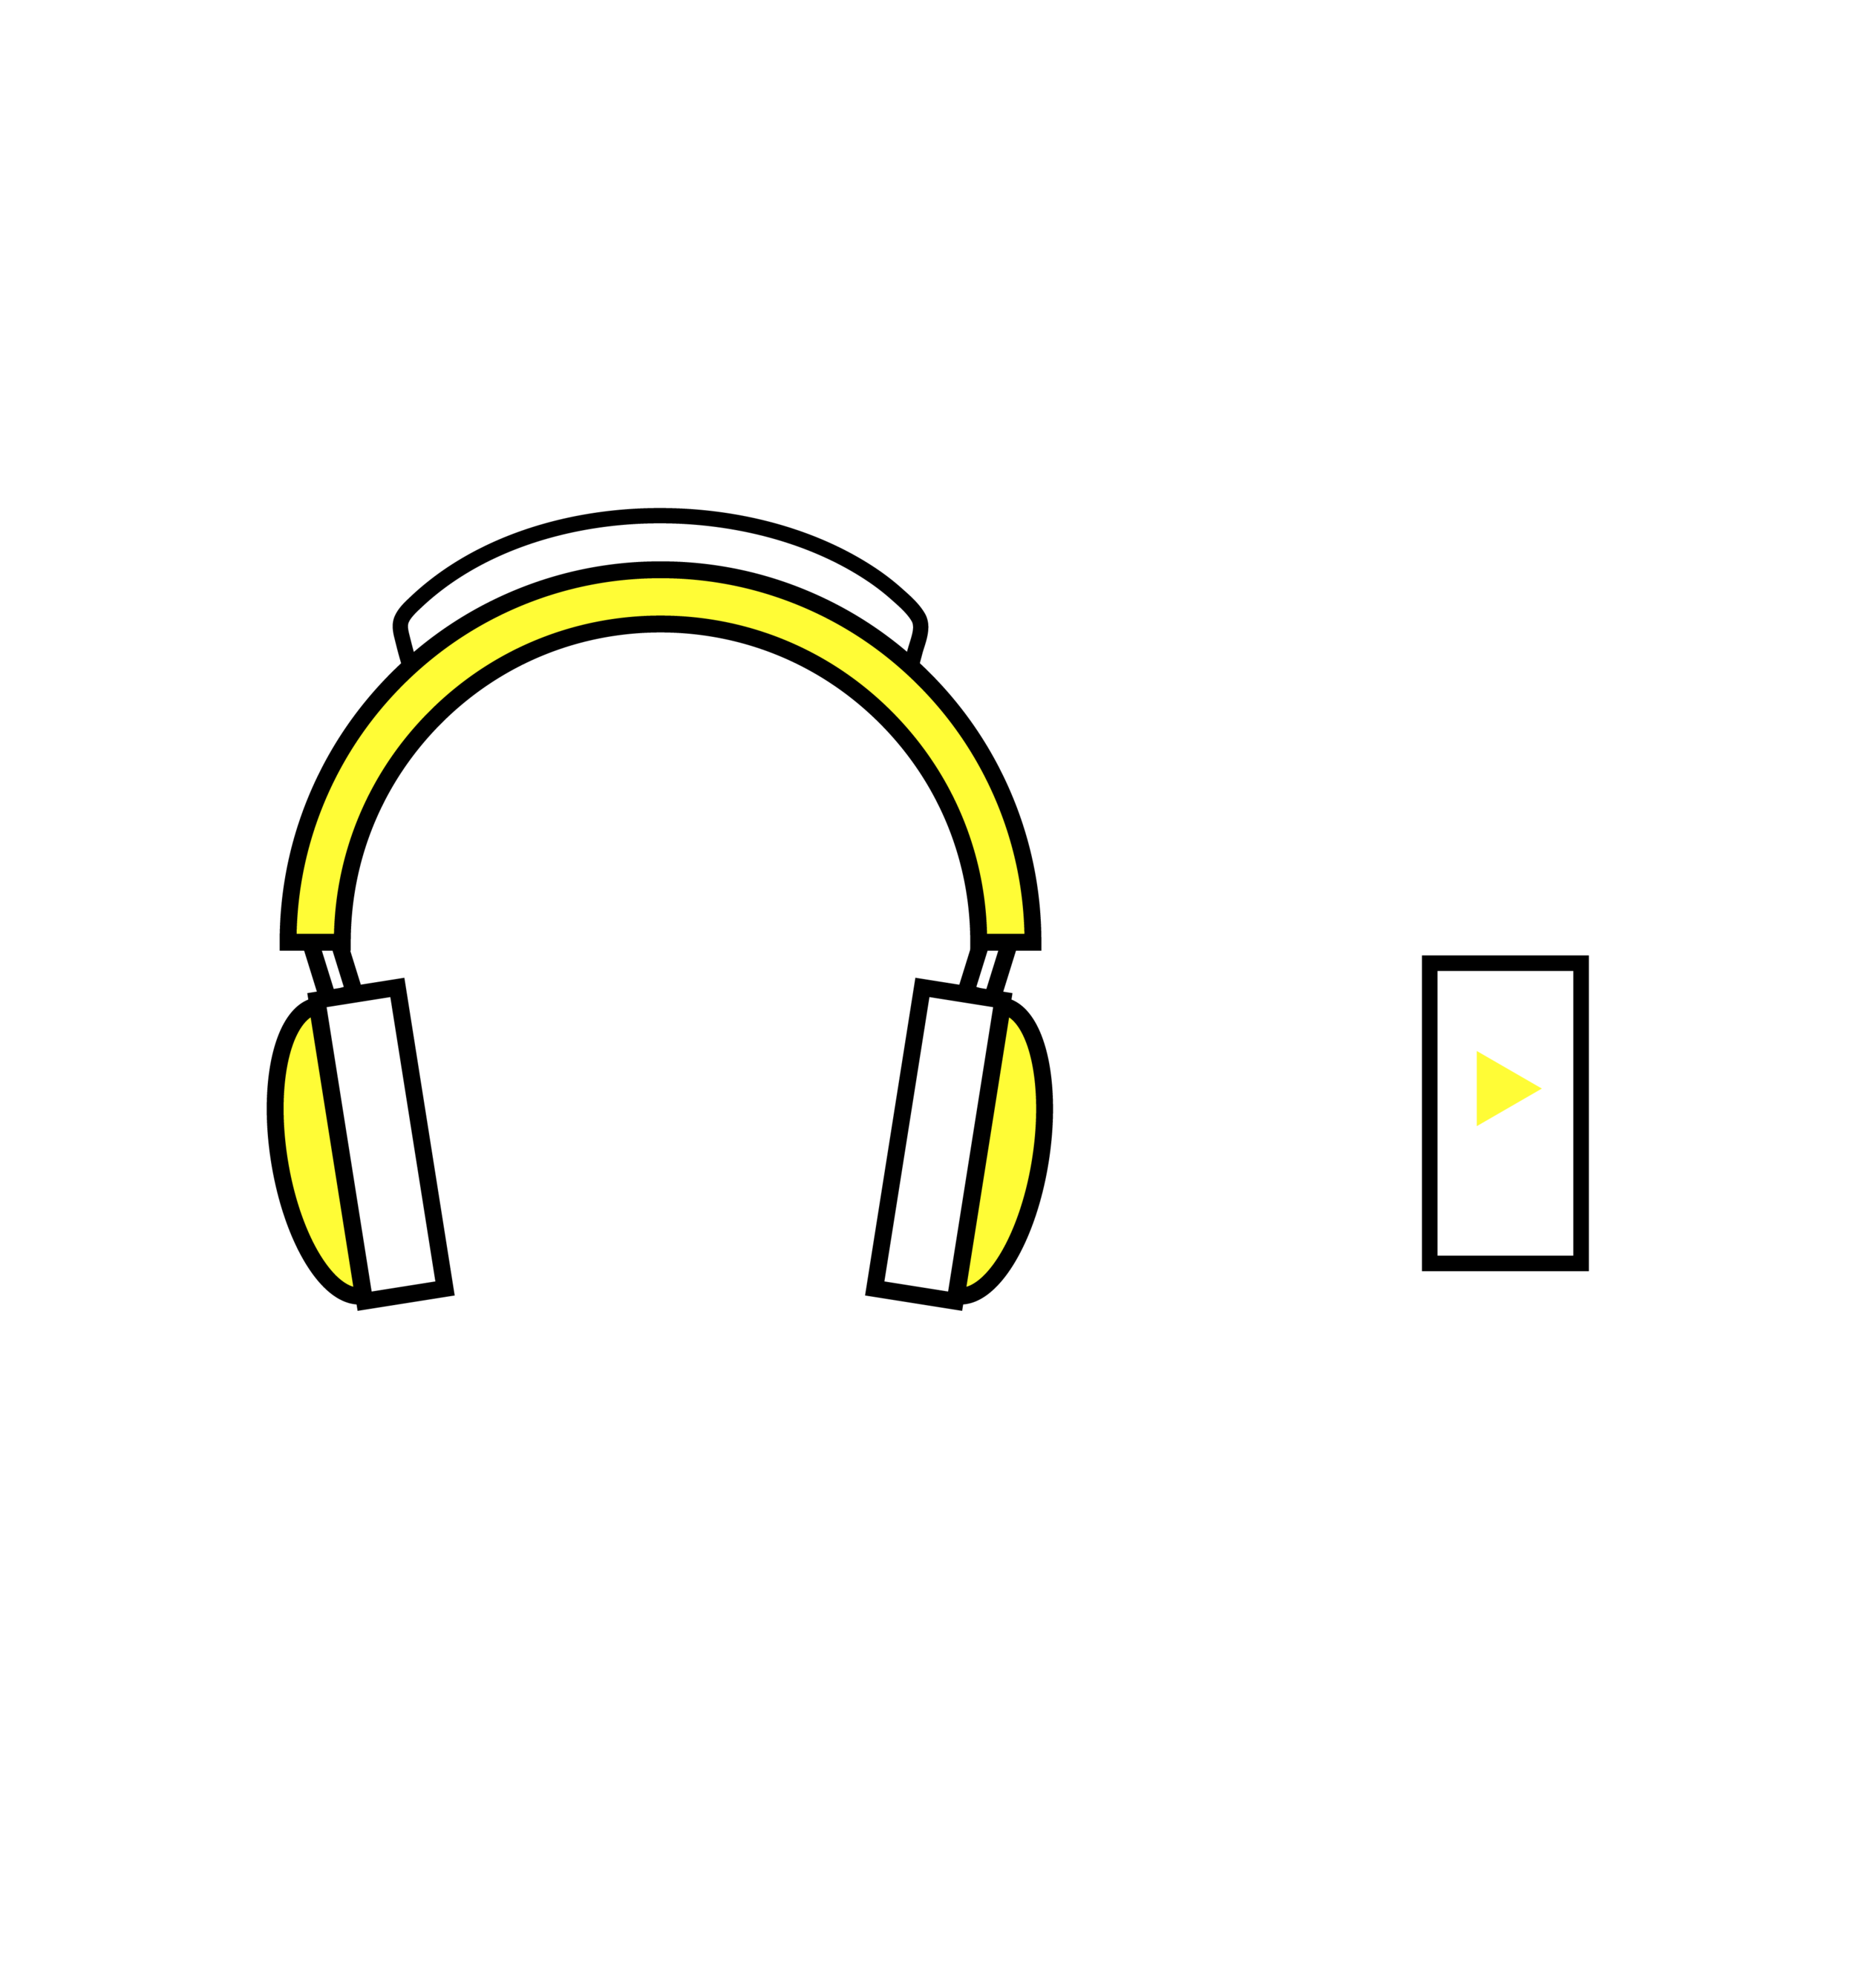 NOUS Sonic Headphones - The headphones allow excellent sound quality and accurate high speed indoor positioning.